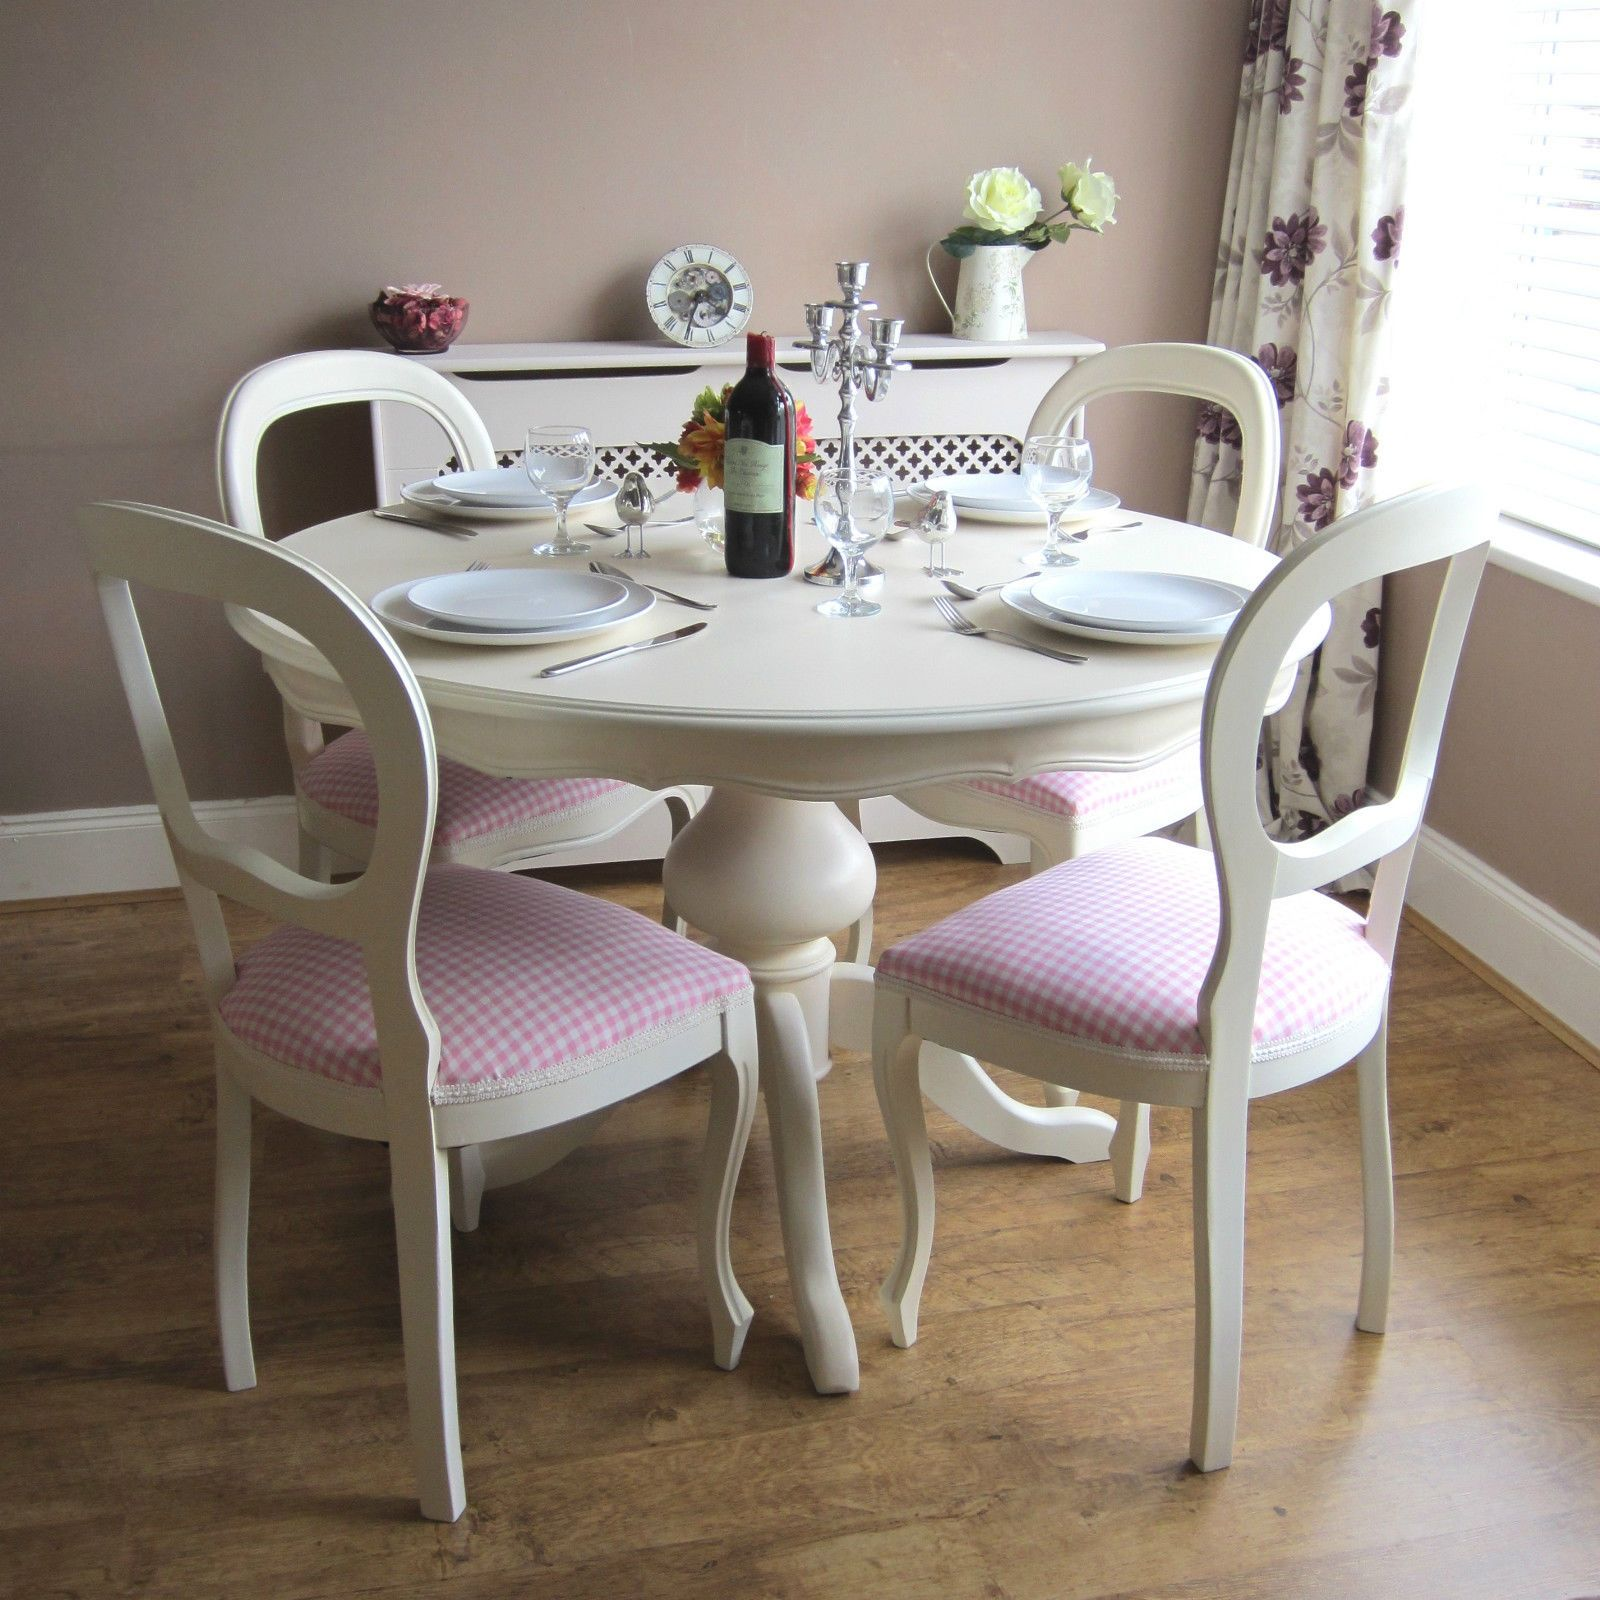 Pink kitchen table and chairs sodakaustica pinterest